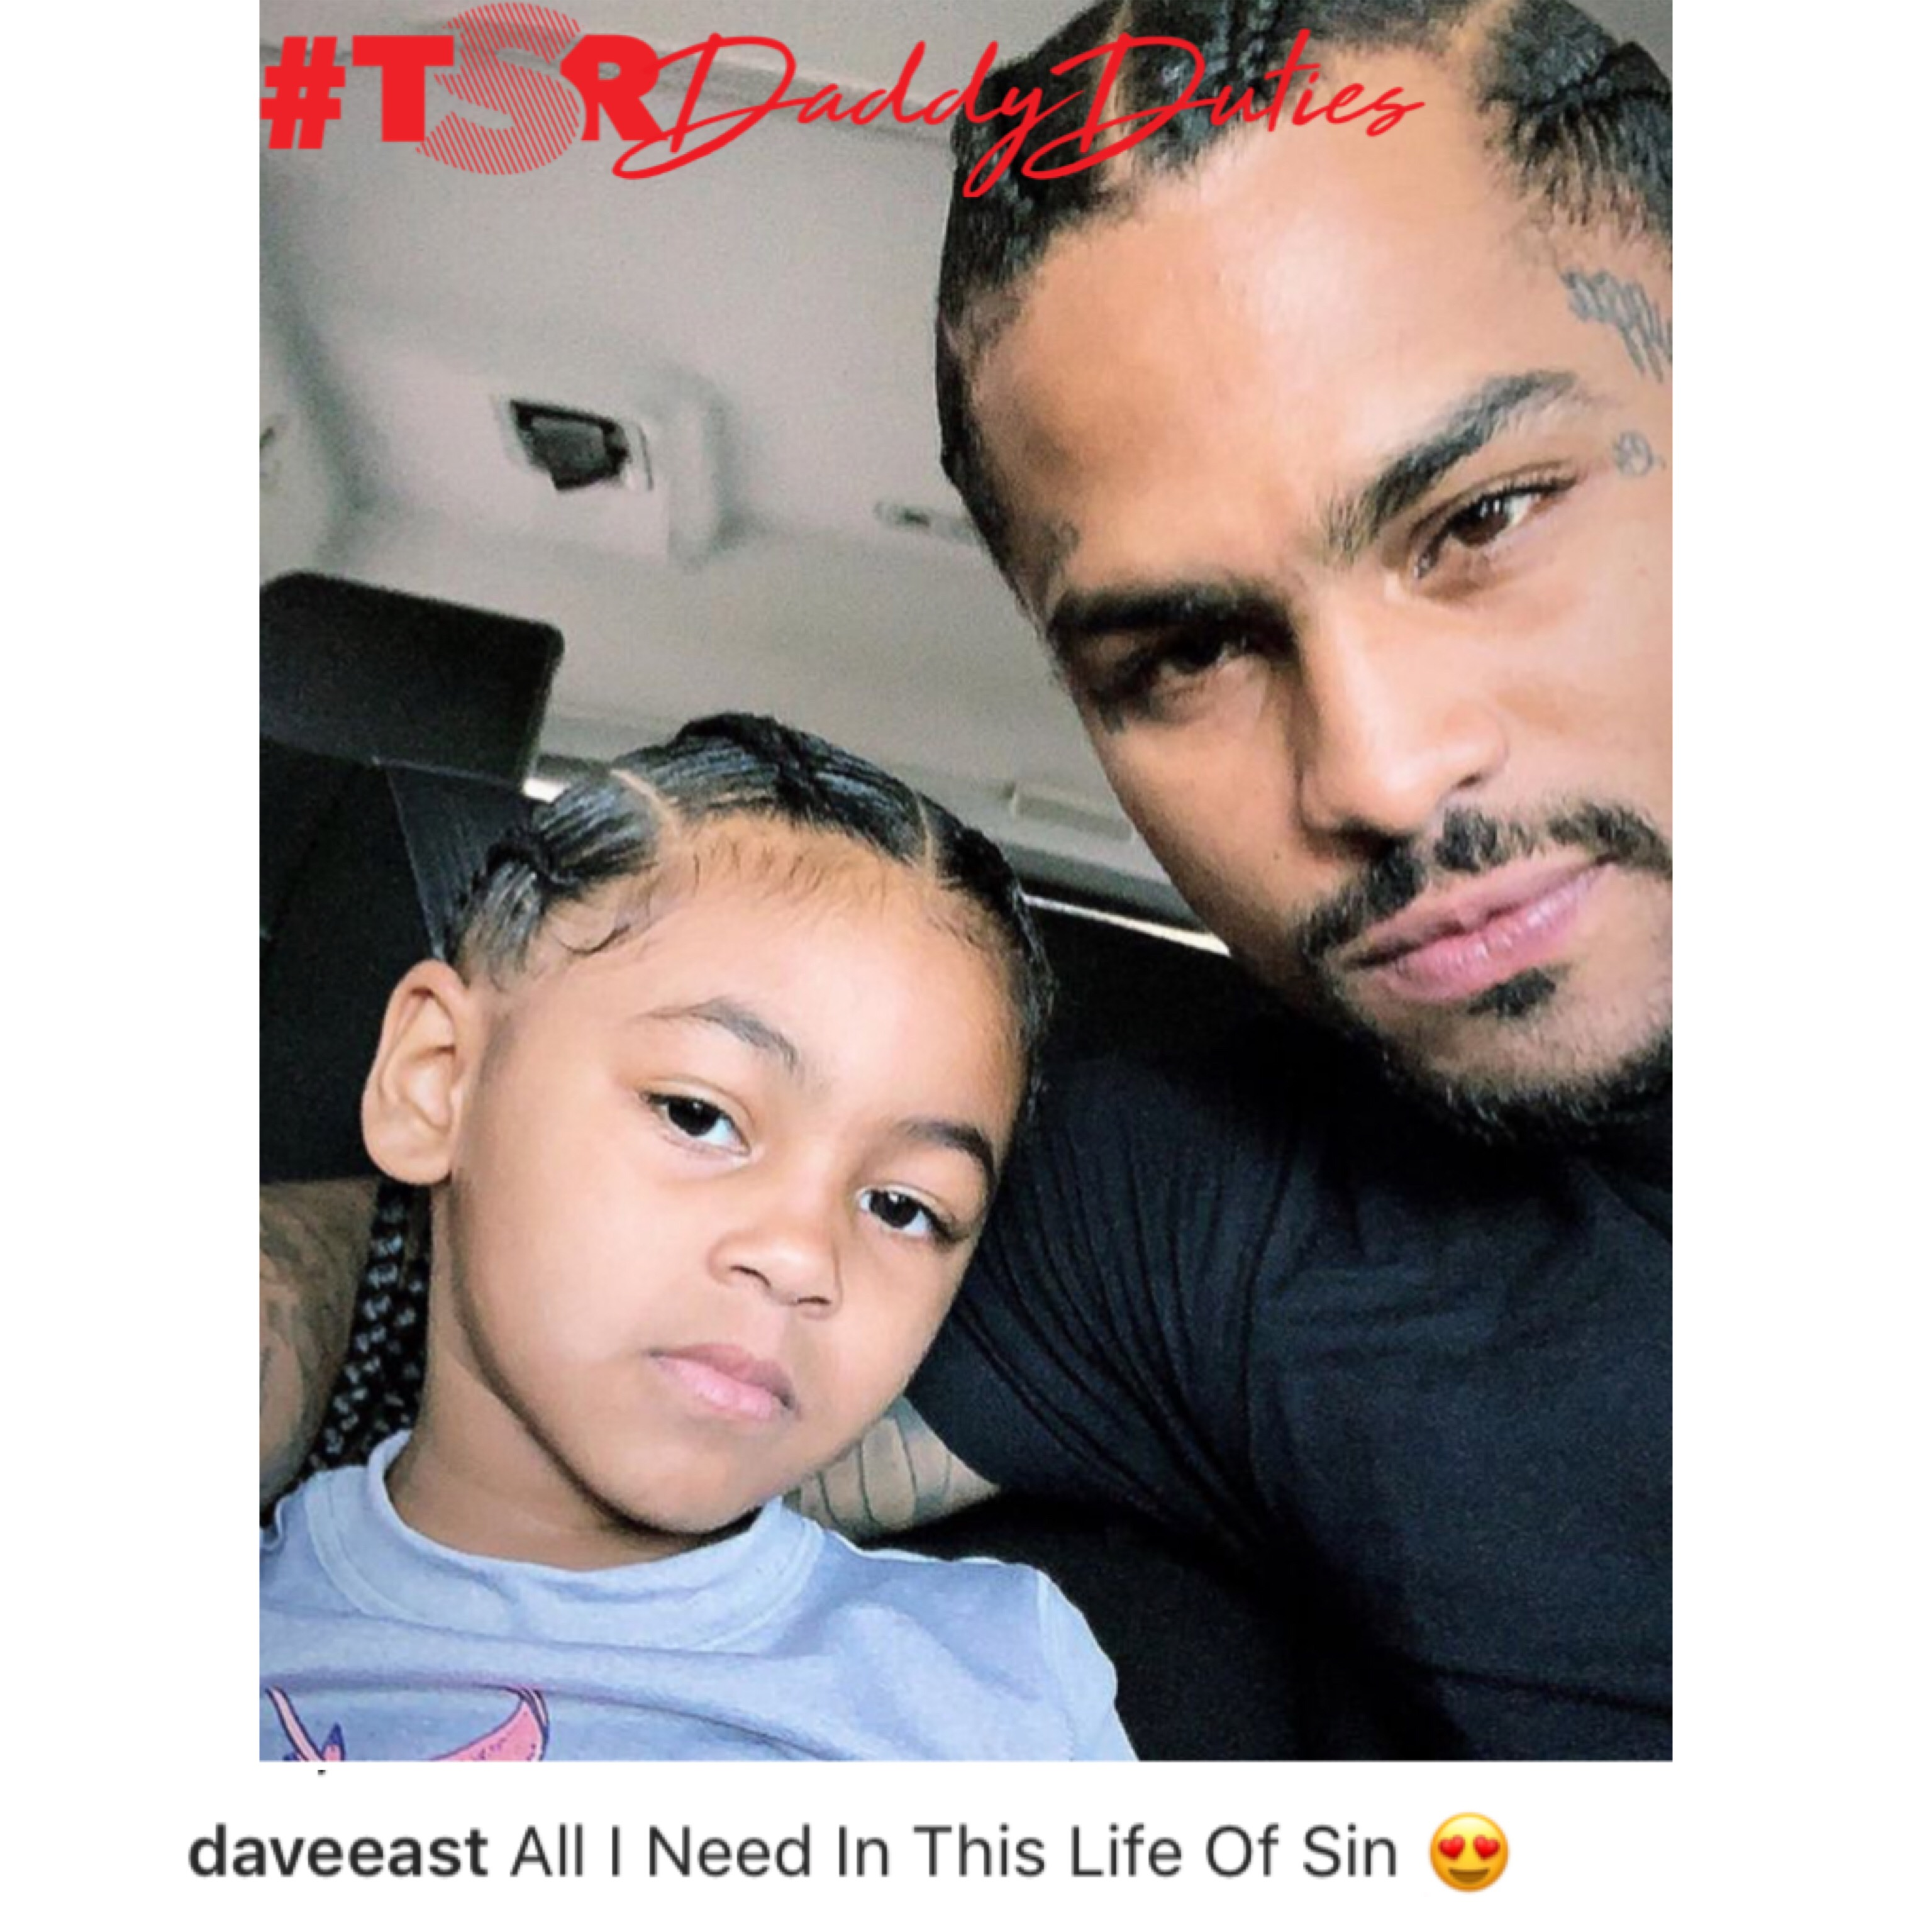 Dave East & His Daughter!